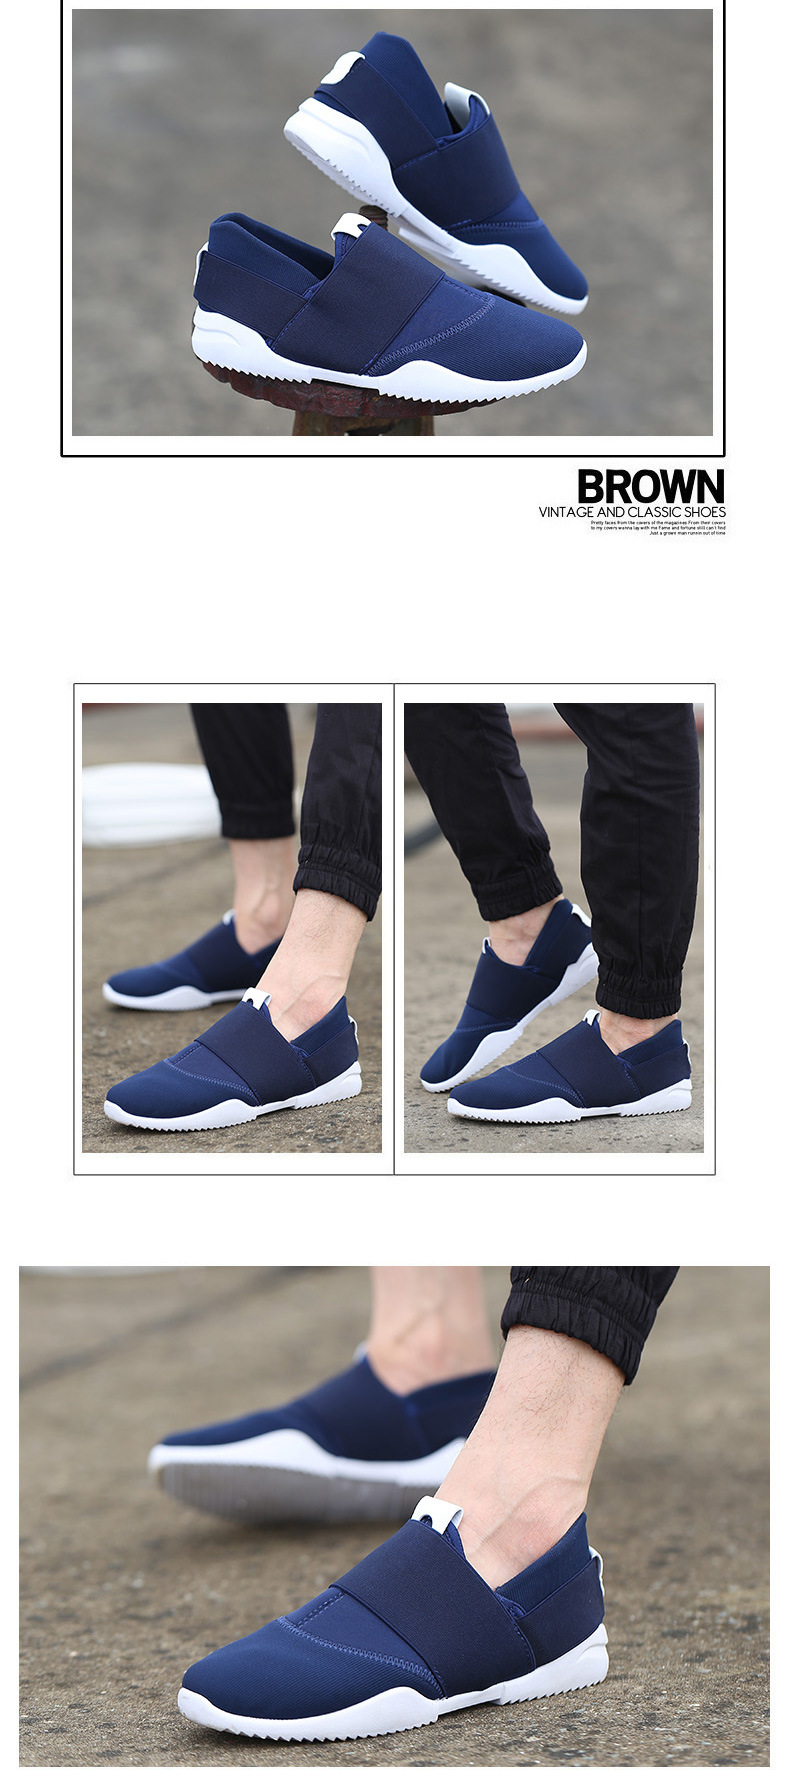 Men Slip-Ons Higher Shoes Men's Casual Shoes Breathable Canvas Sneakers Shoes For Men blue 39 4